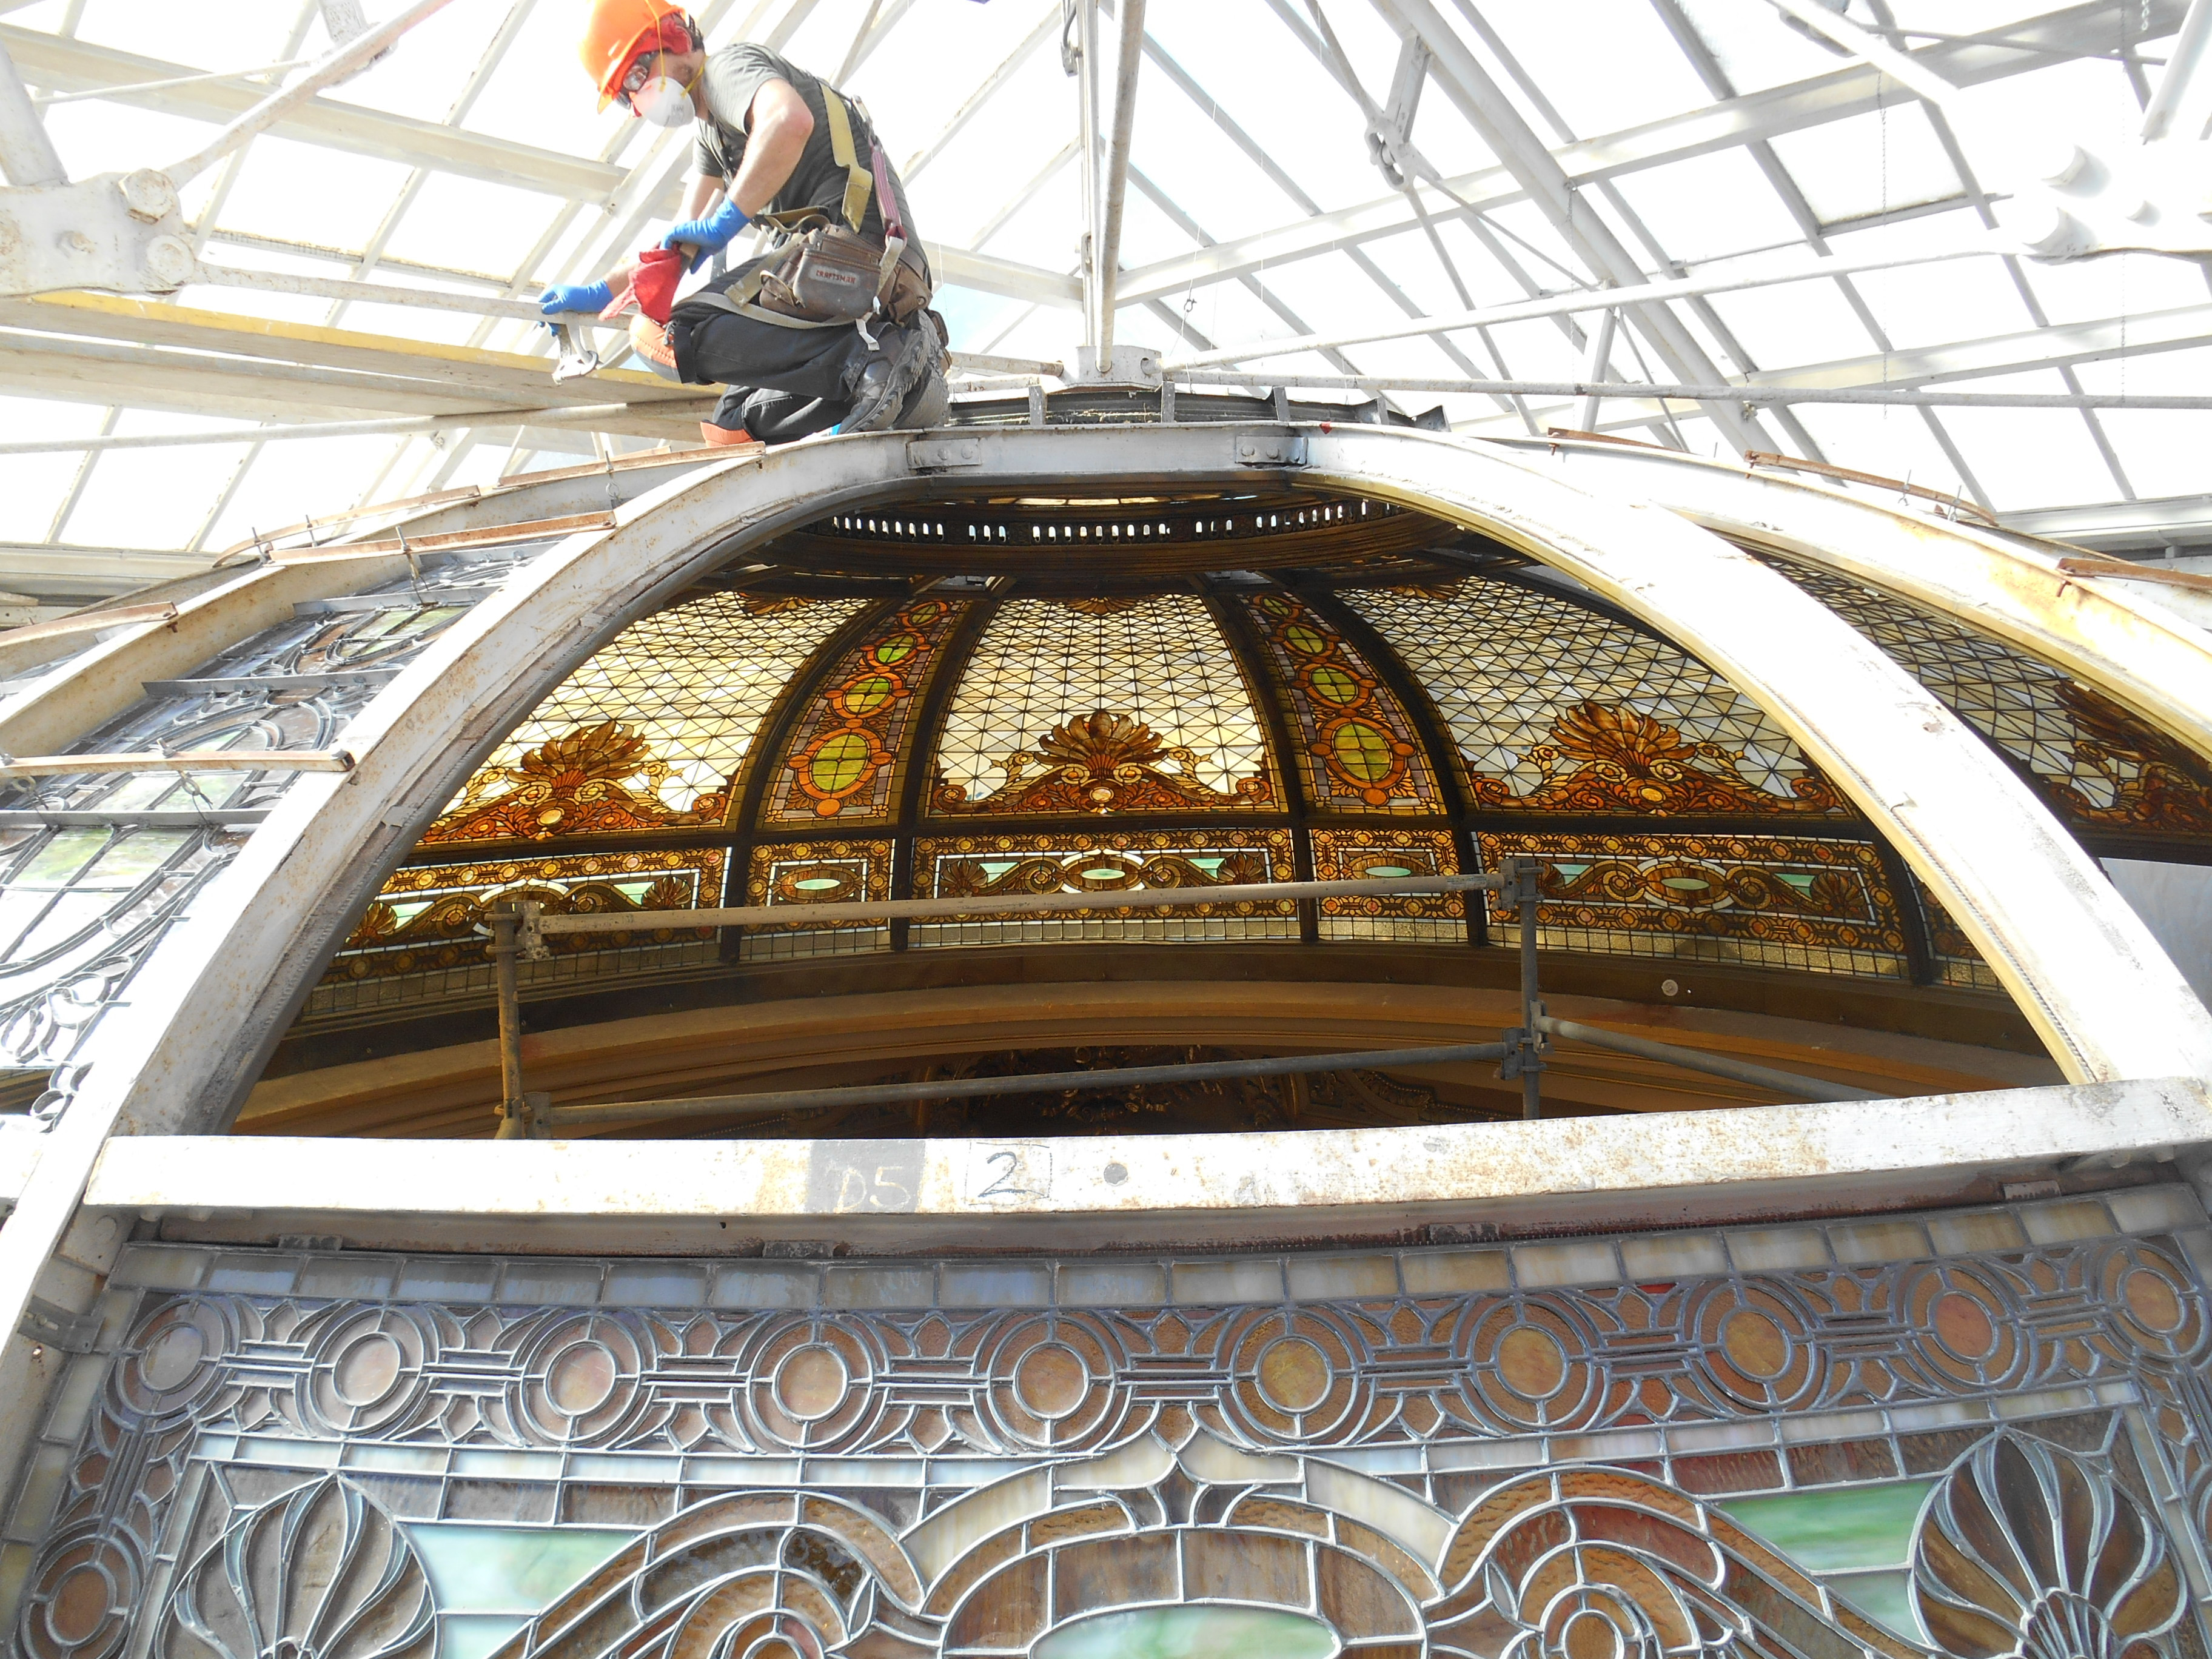 Scaffolding set up for onsite installation of church stained glass